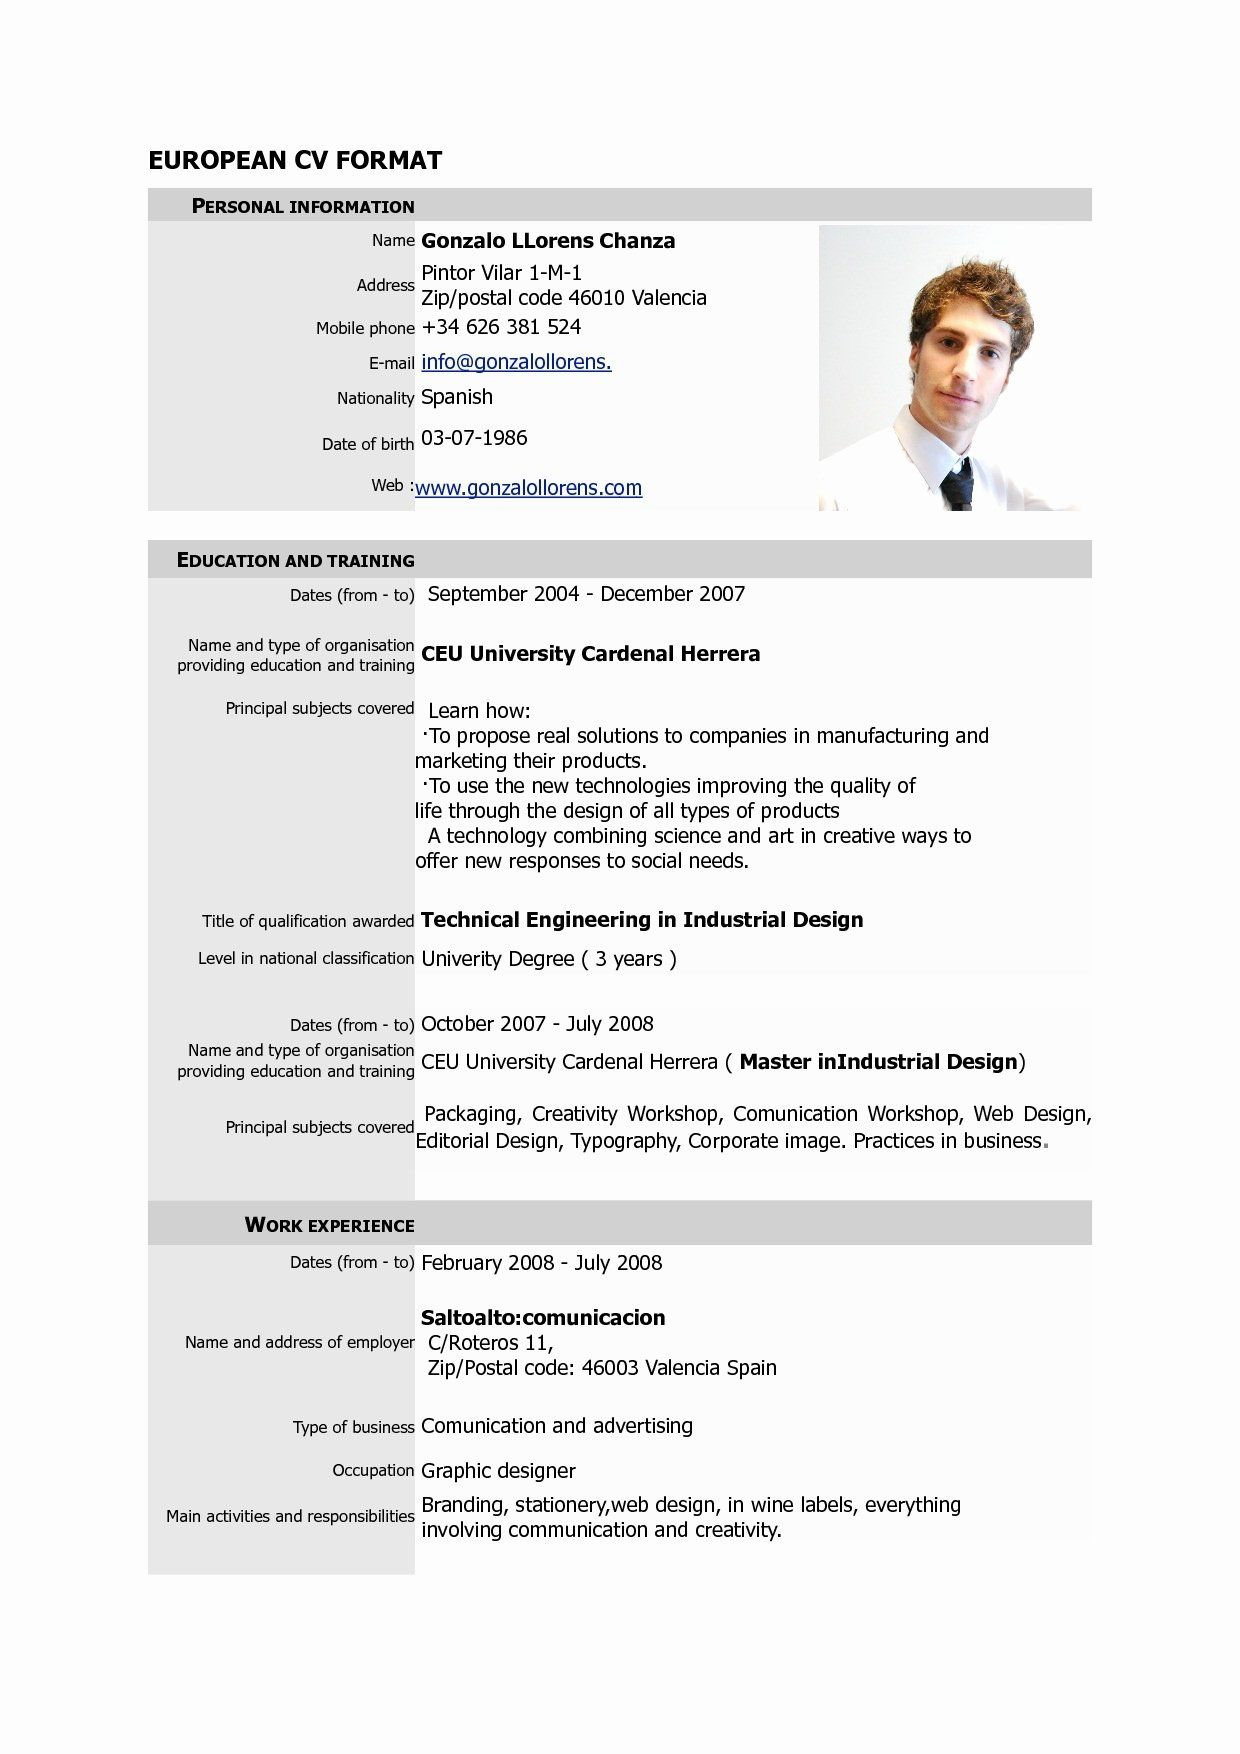 free resume templates pdf best of cv format planner template for job bio data marriage Resume Canadian Resume Template Download